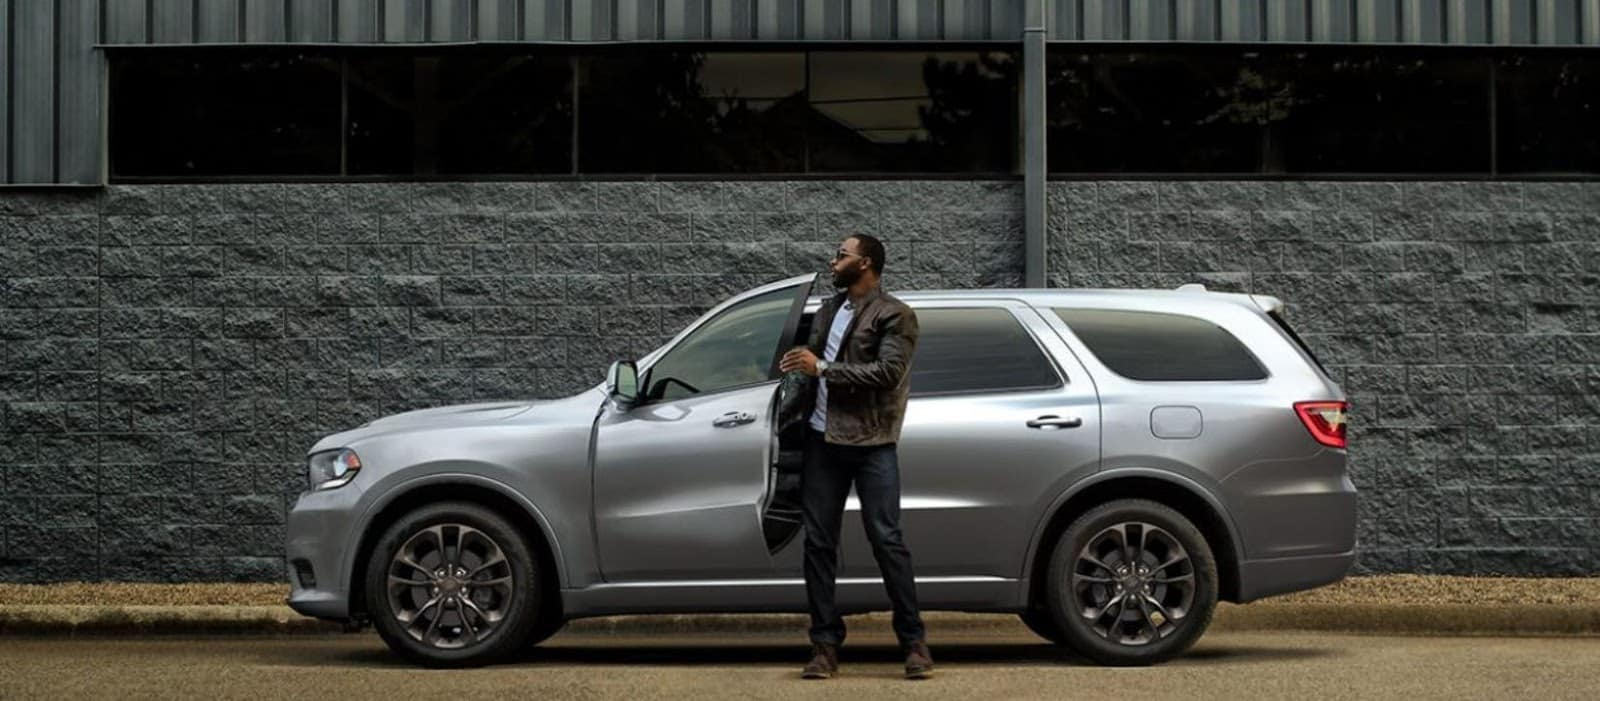 2019 silver dodge durango against dark gray wall on brown road with man in leather jacket and sunglasses stepping out of it holding door